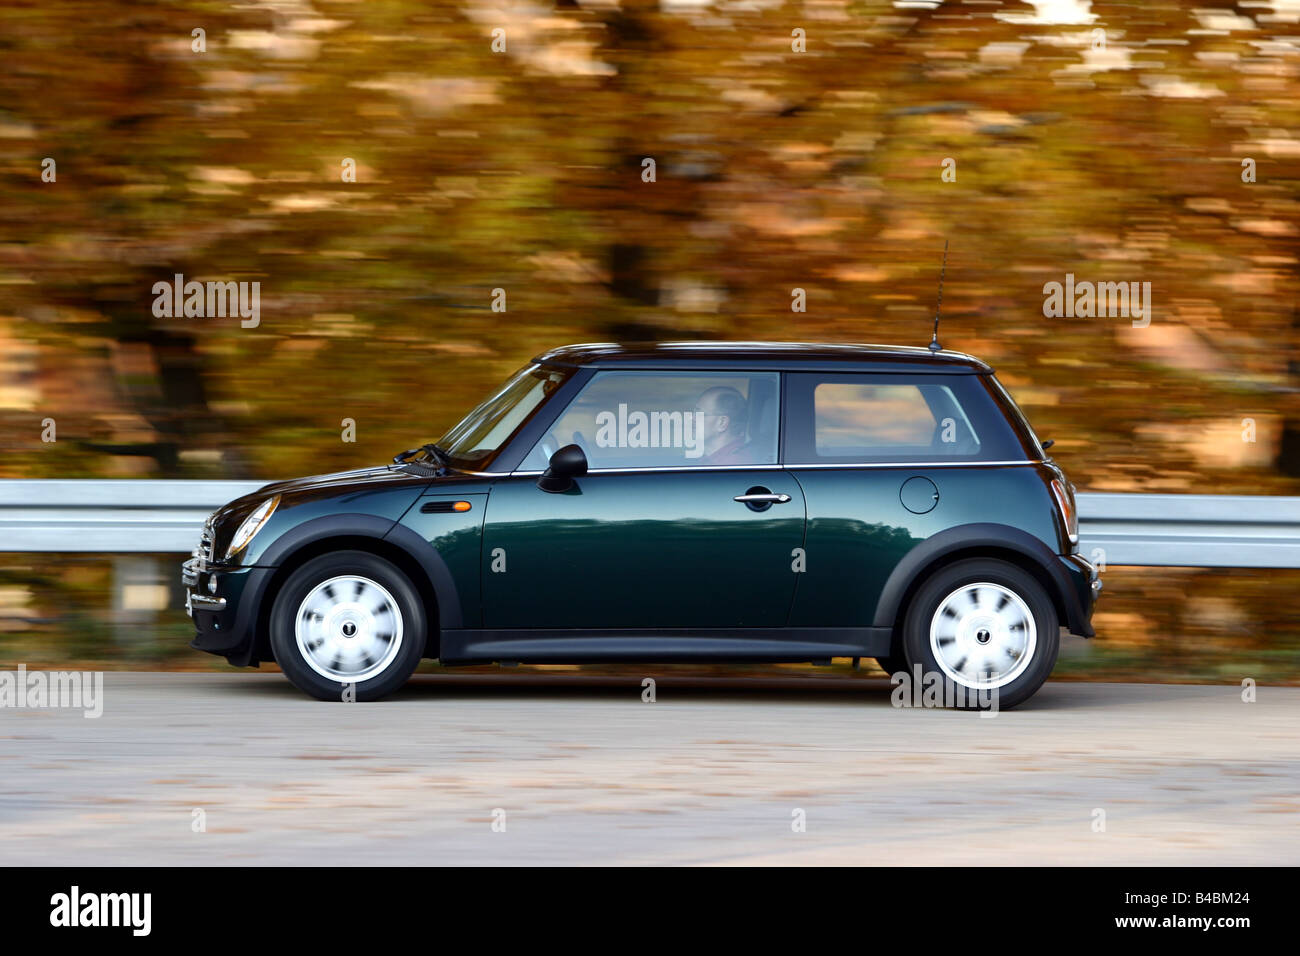 Car, Mini One D, model year 2001-, dark green, Miniapprox.s, Limousine, FGHDS, driving, side view, country road - Stock Image